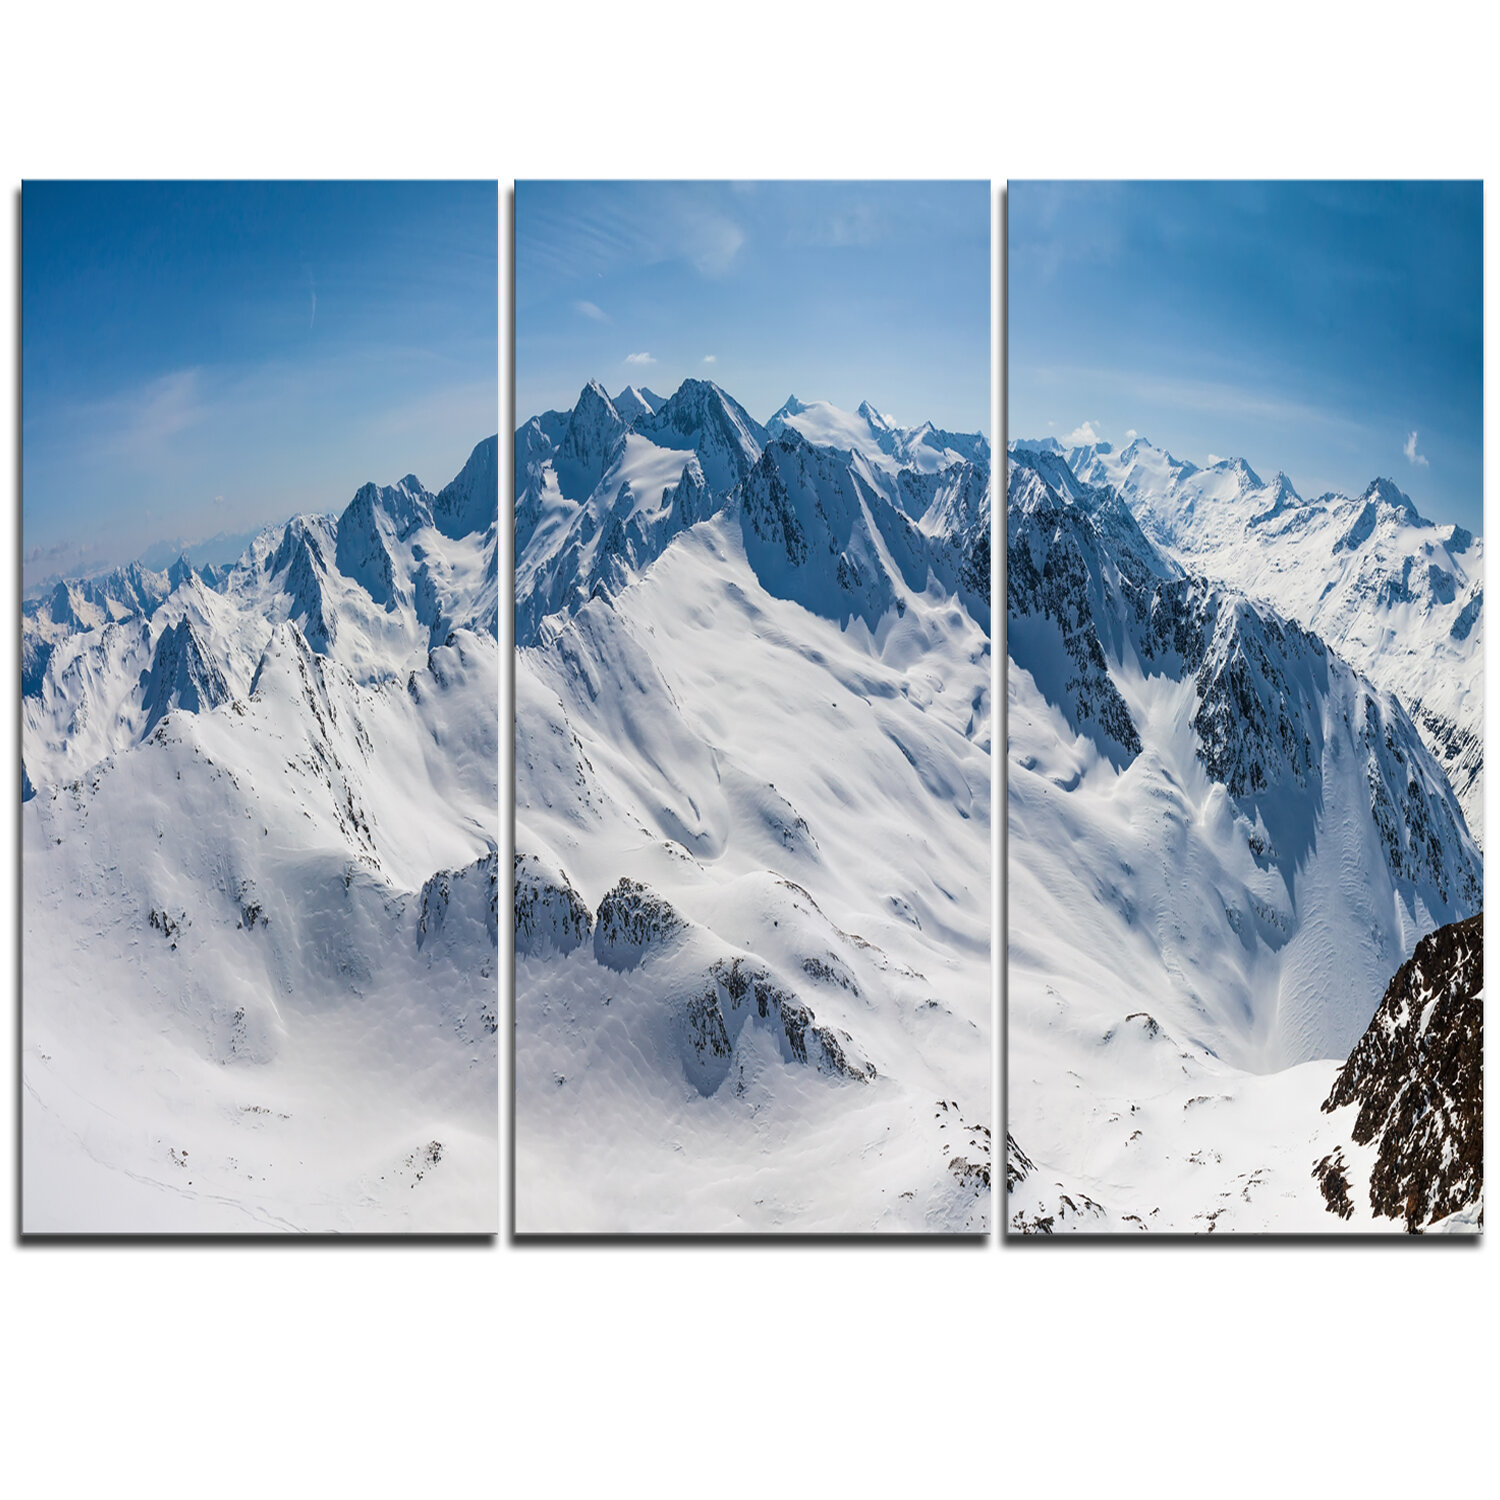 Designart Snowy Mountains Panoramic View 3 Piece Graphic Art On Wrapped Canvas Set Wayfair